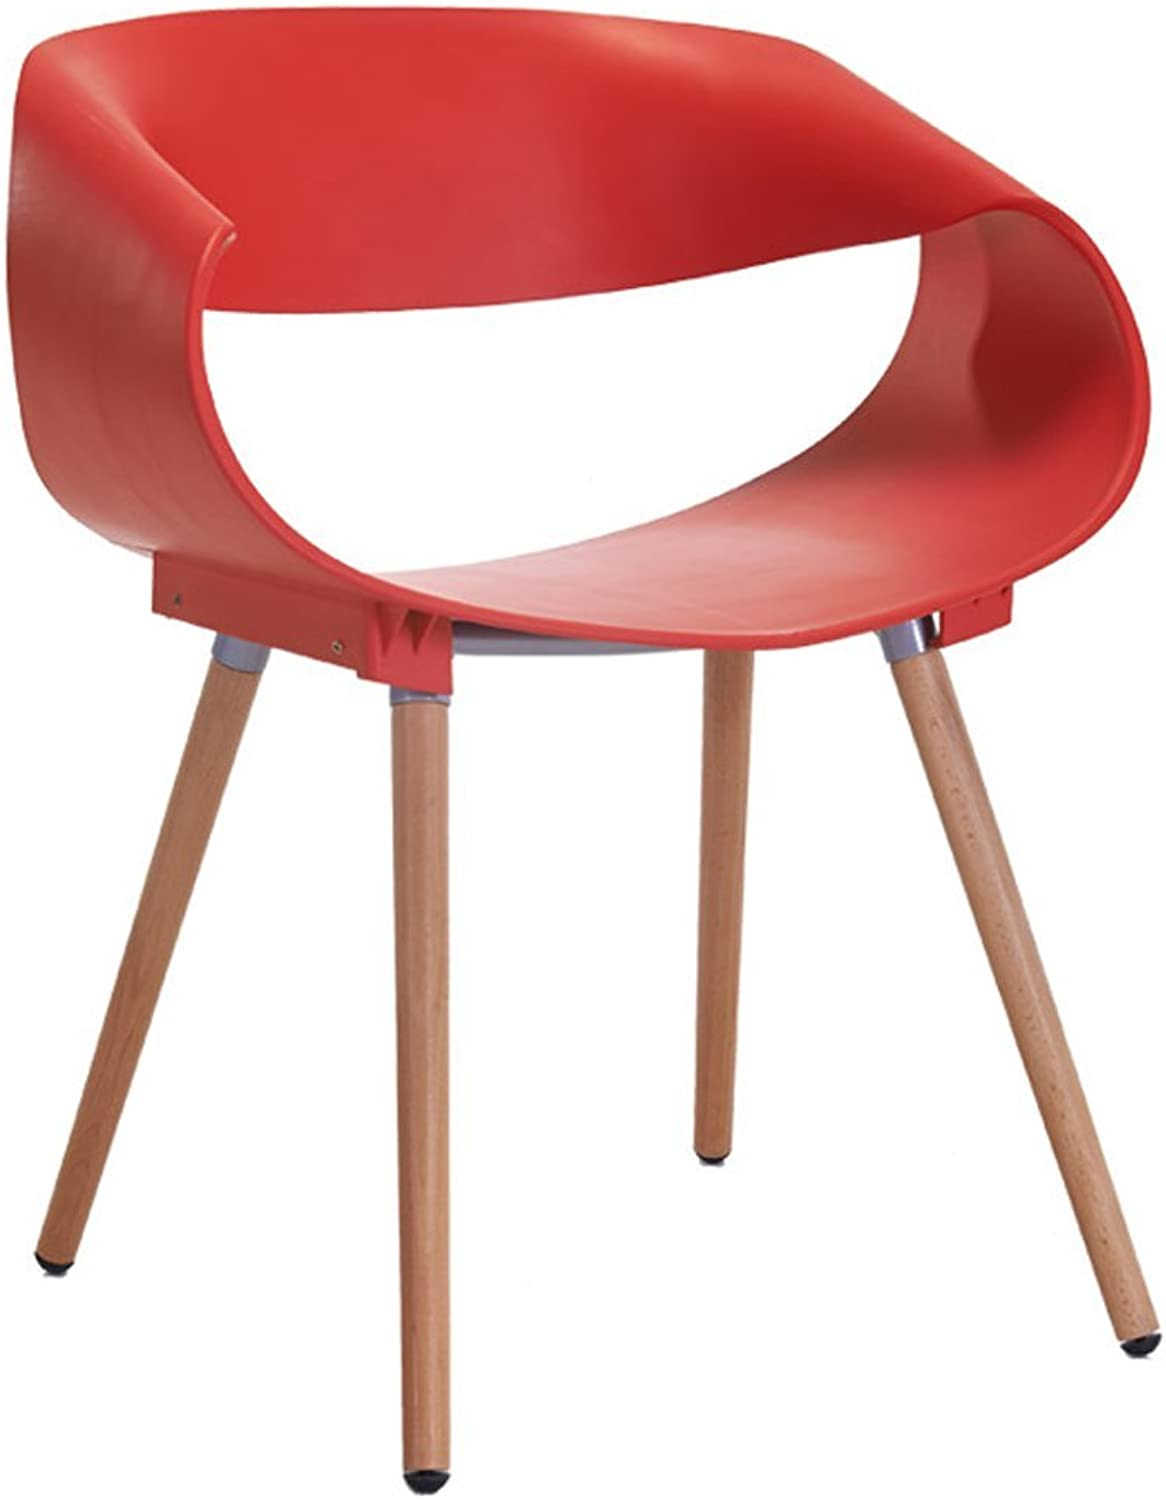 HZB Red Modern Minimalist Creative Chair Negotiation Chair Solid Wood Backrest Armrest Dining Chair